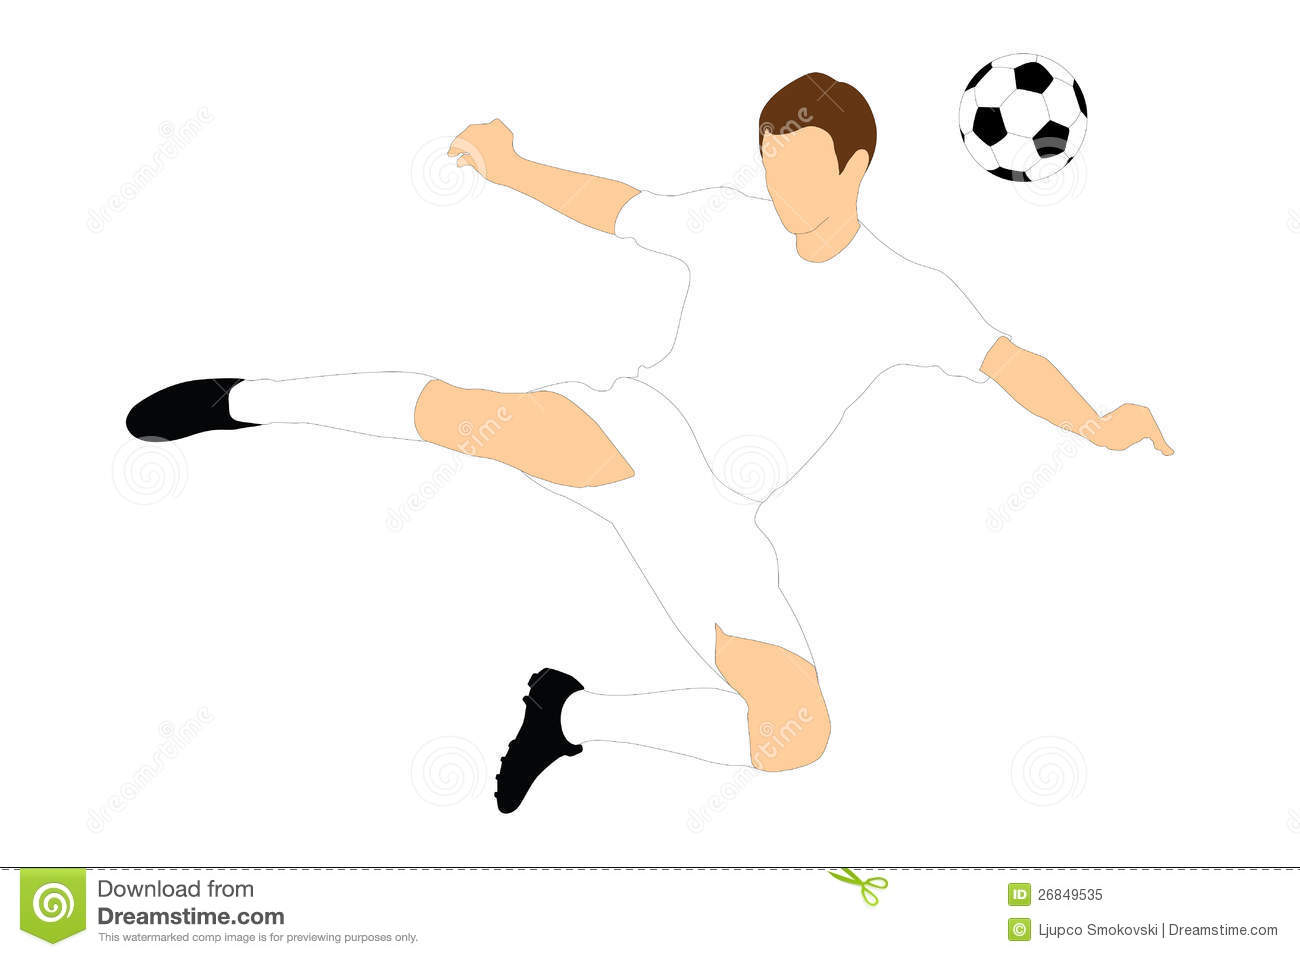 A soccer player shooting a ball with his head